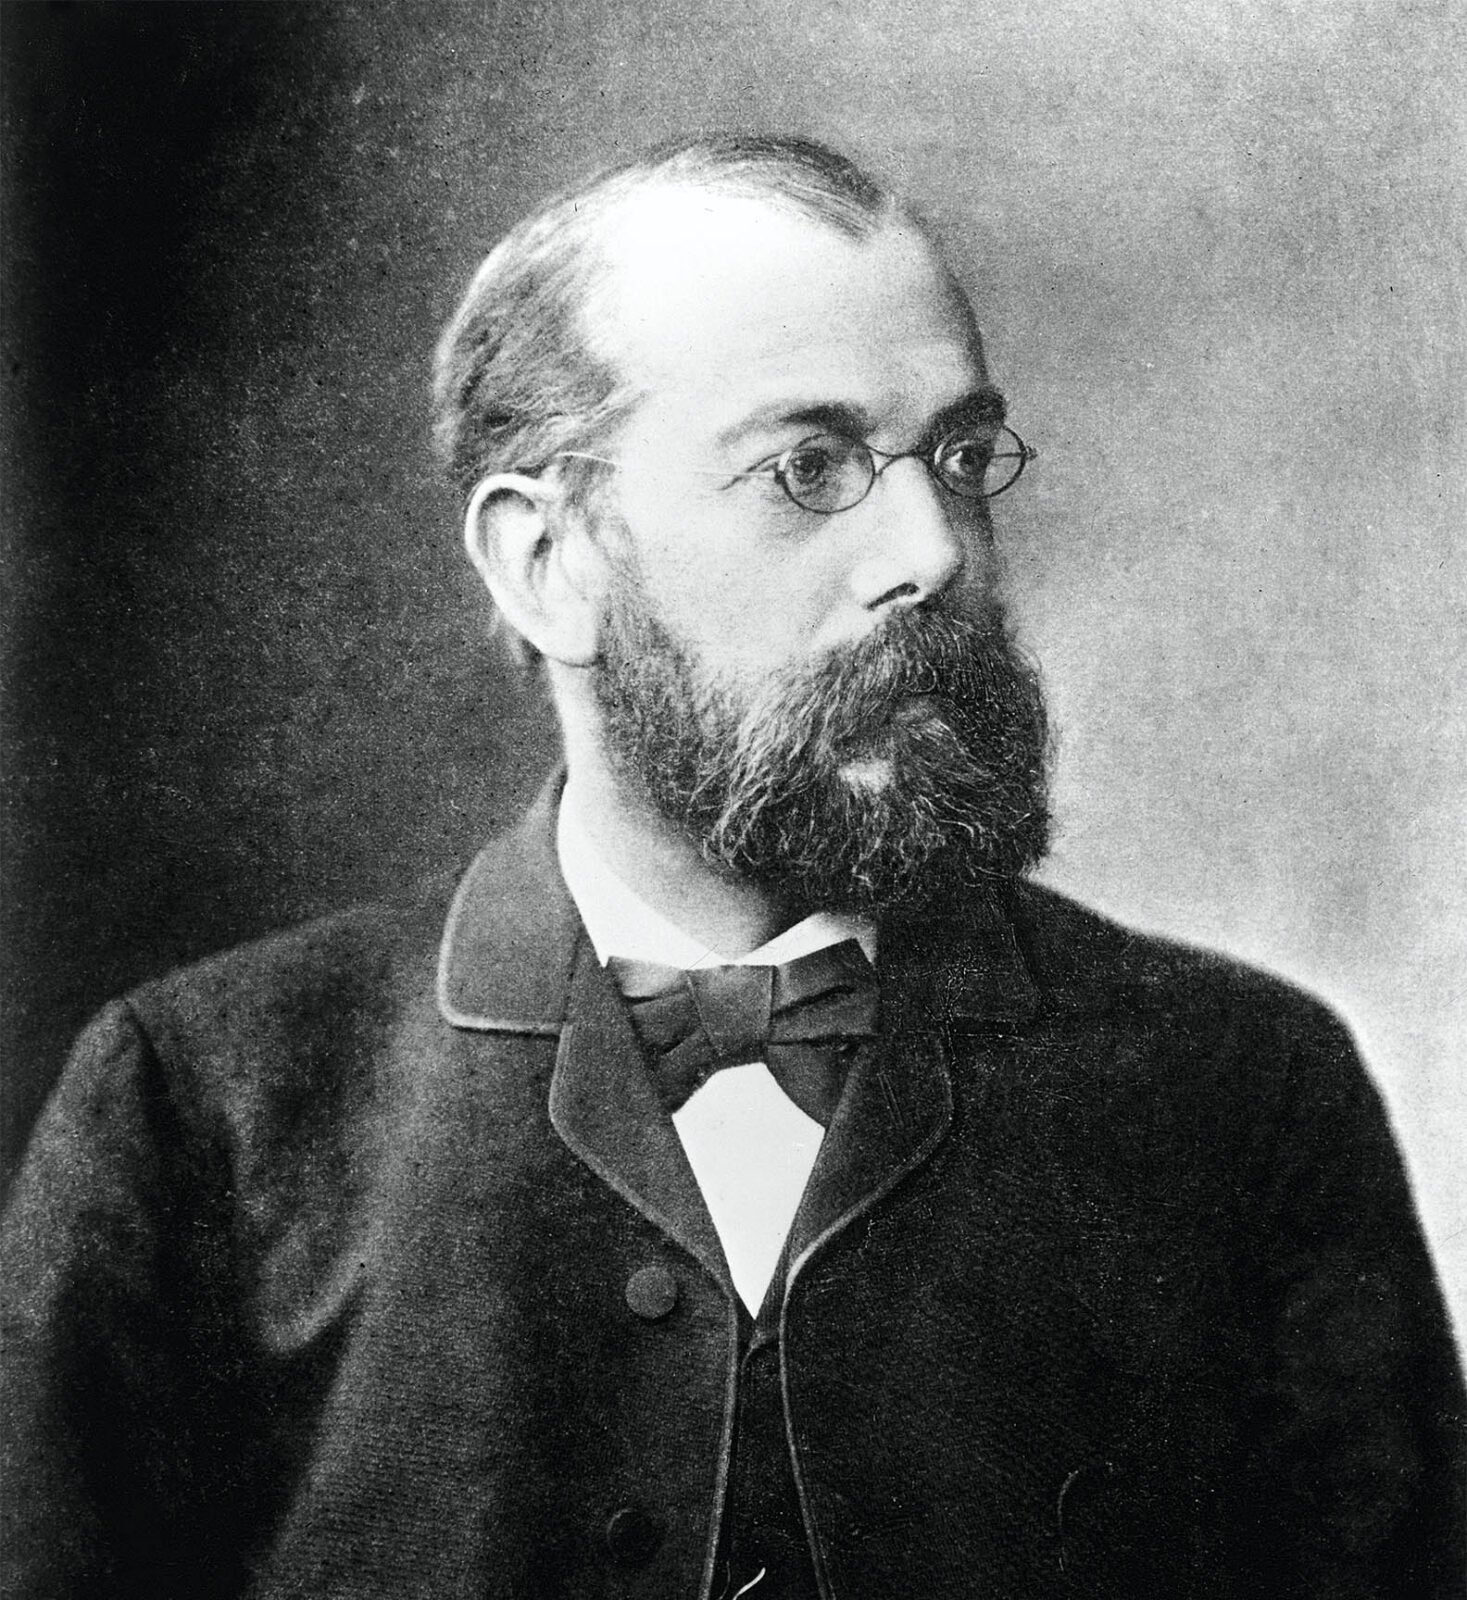 Black and white portrait of a middle-aged bearded man with a light skin tone wearing small wireframe glasses and a suit with a bowtie